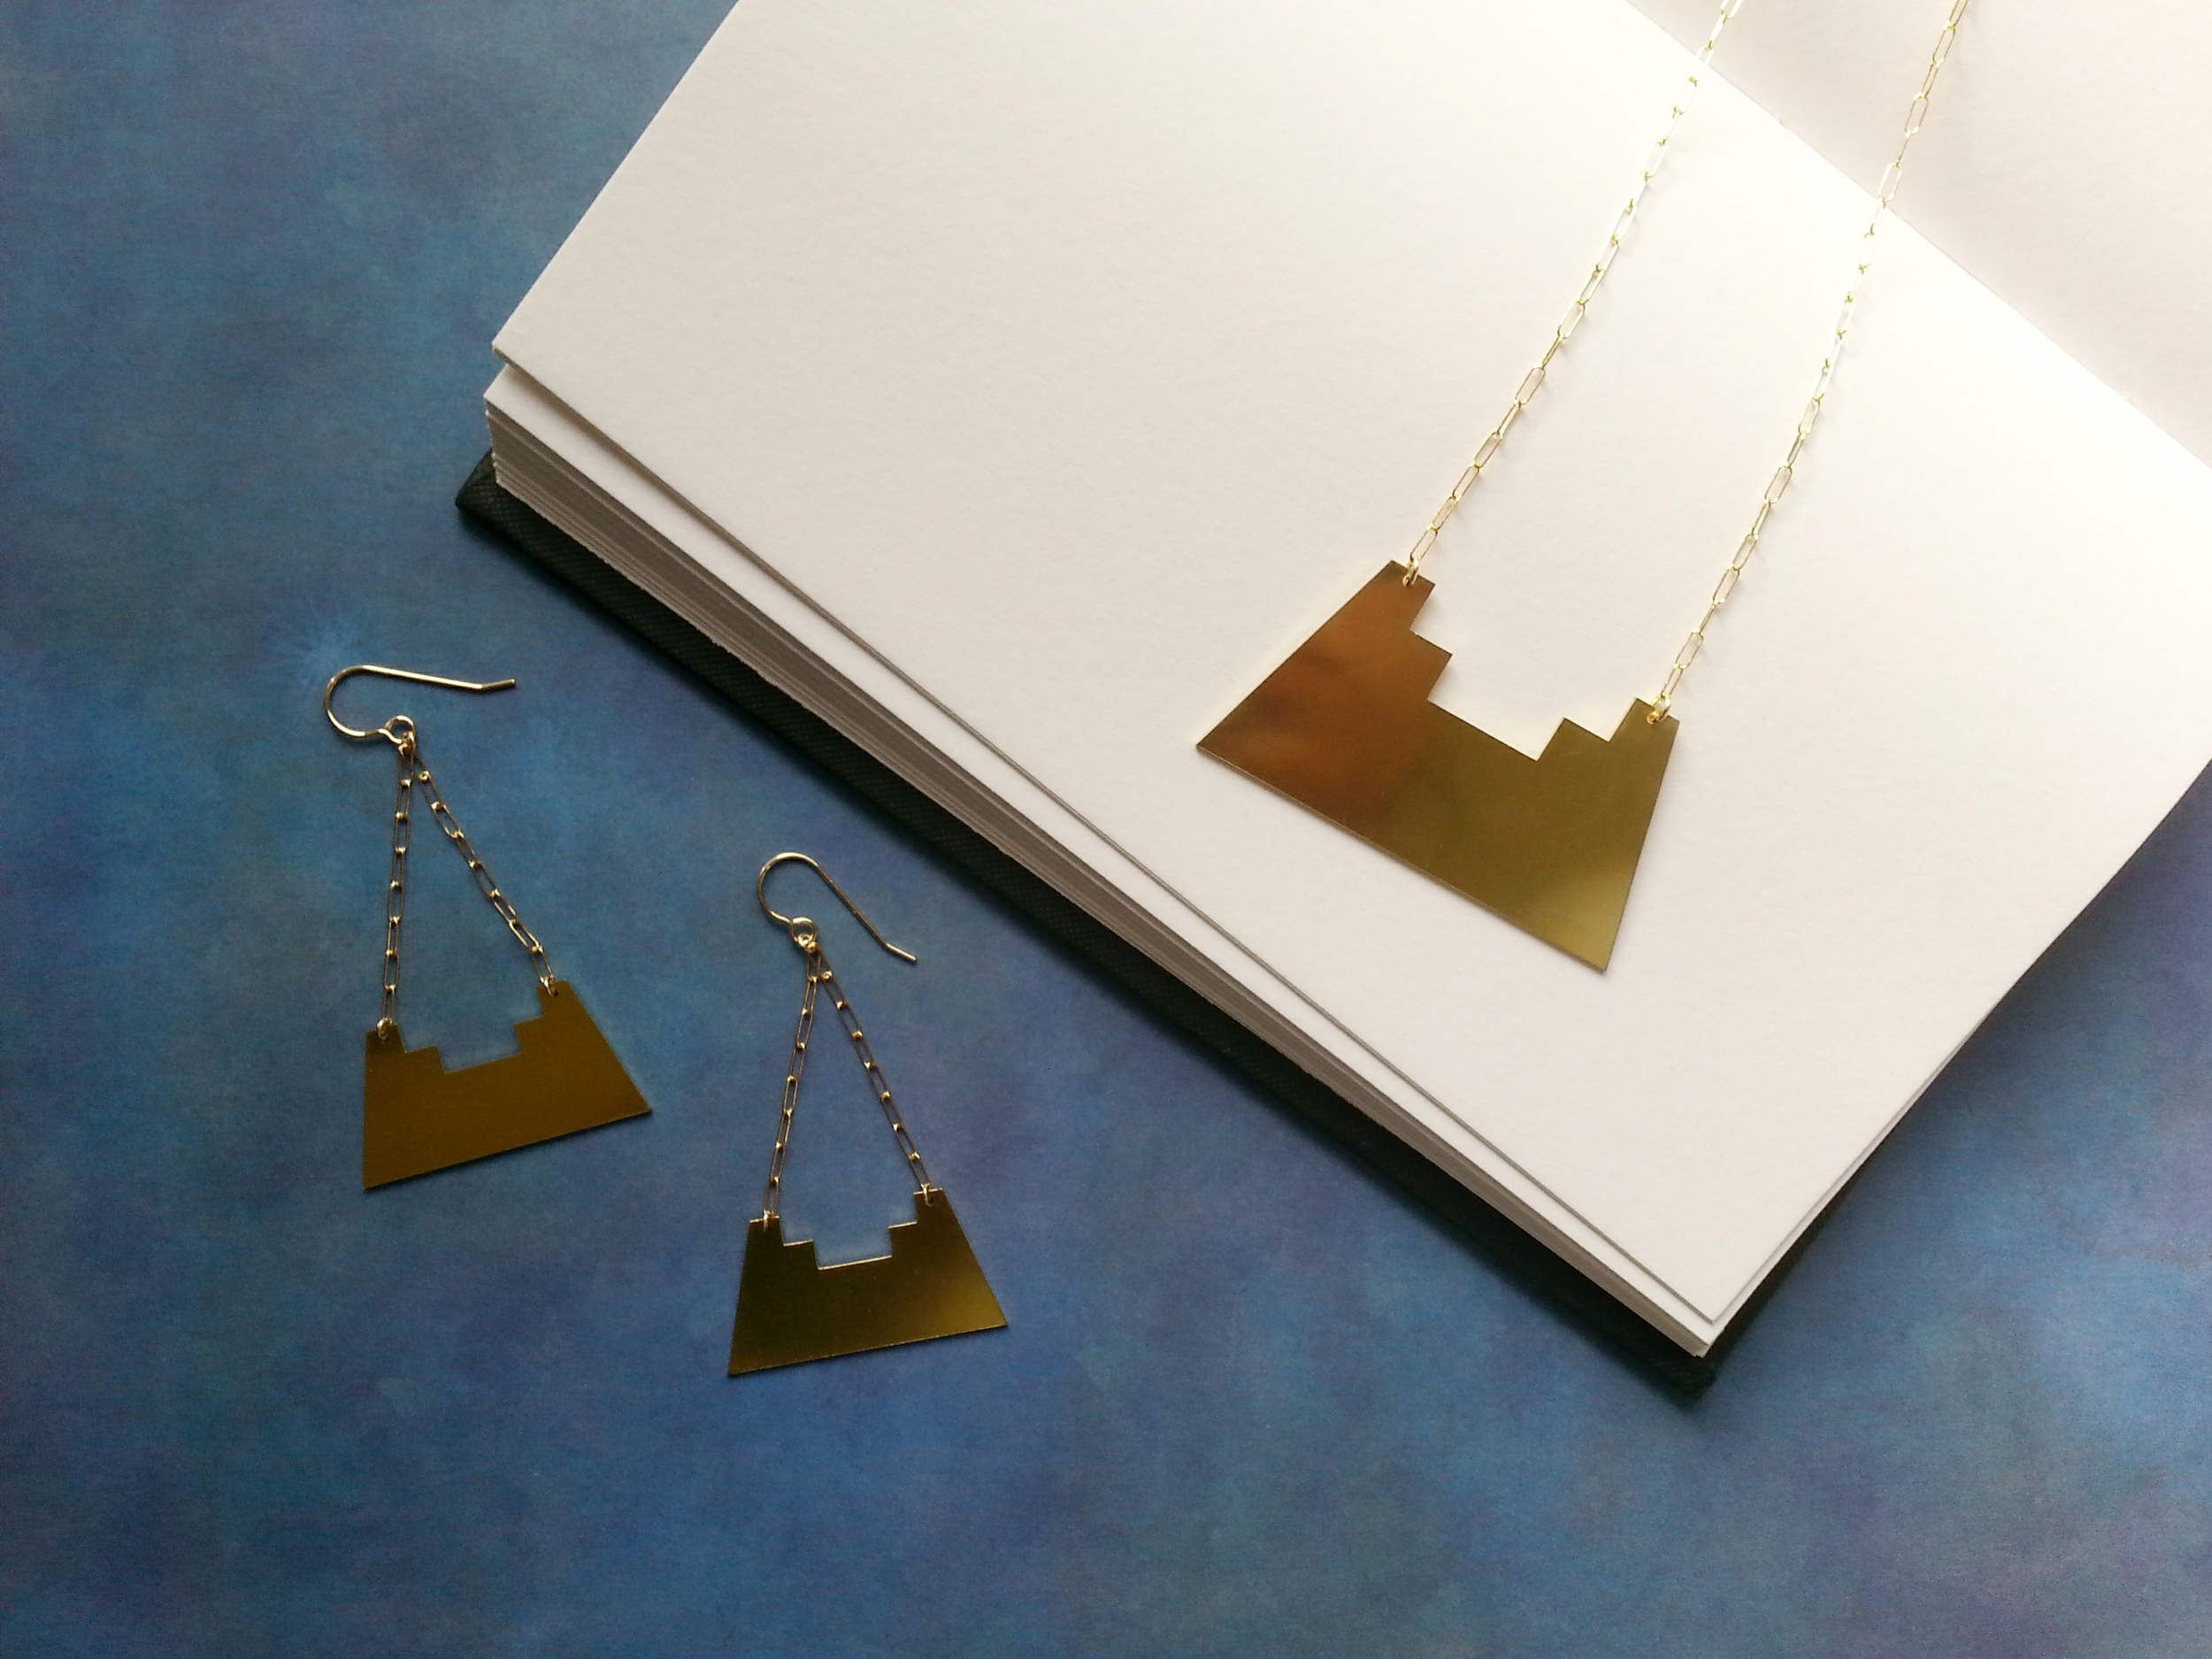 JUARA earrings and necklace. These pieces feature laser cut brass elements and gold-filled chain and findings.